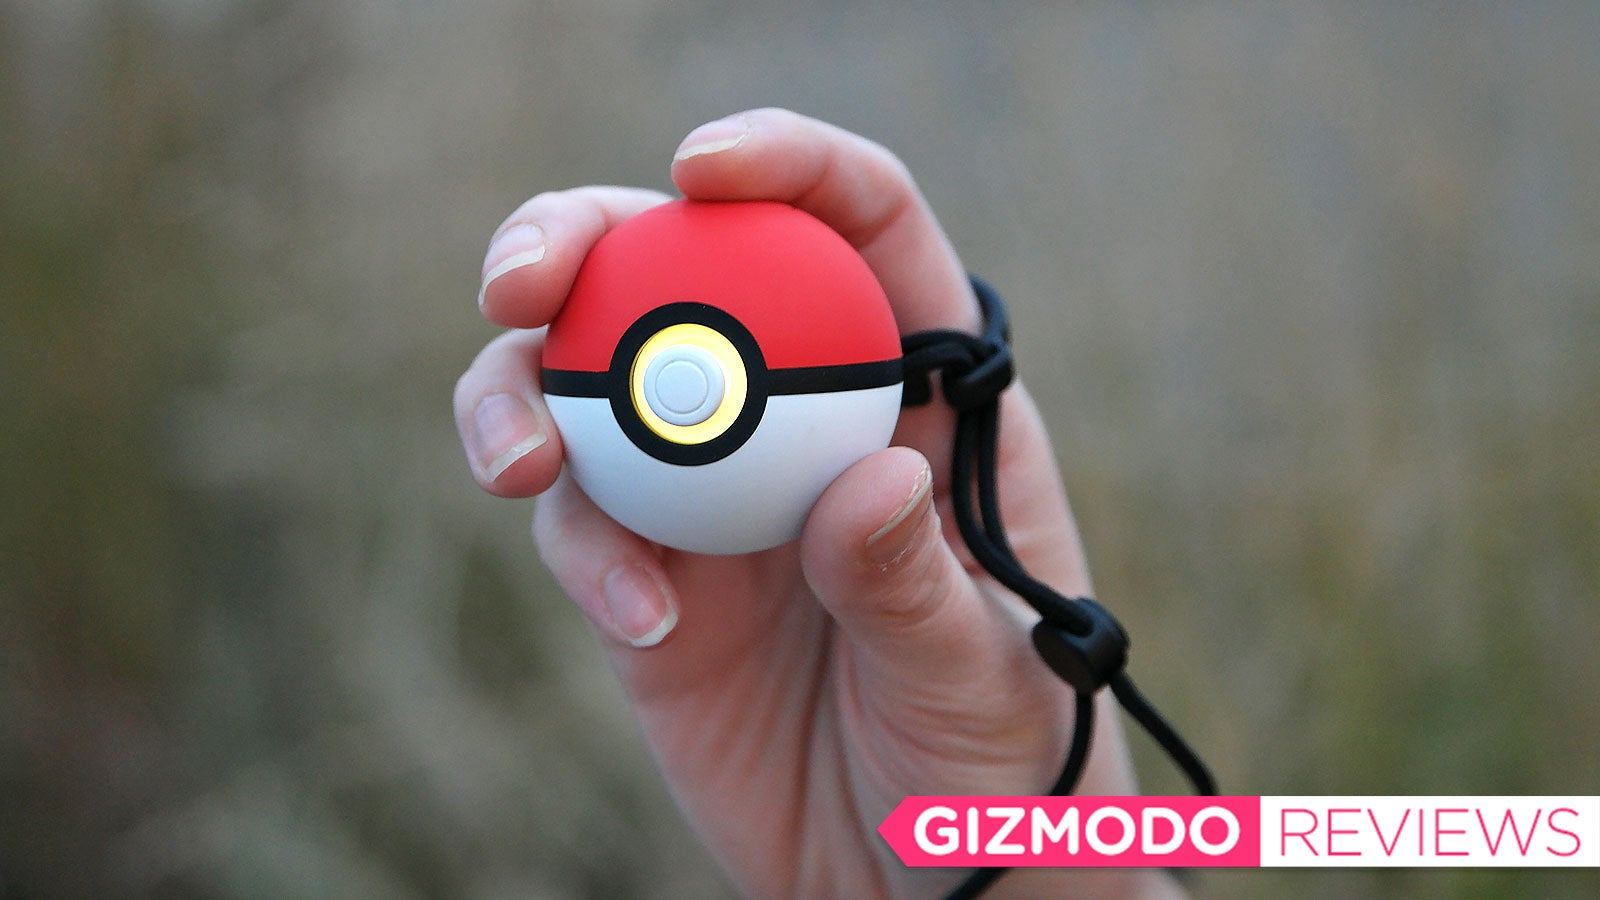 consumer-tech lets-go-eevee lets-go-pikachu poke-ball poke-ball-plus-review pokemon pokemon-go pokemon-go-plus